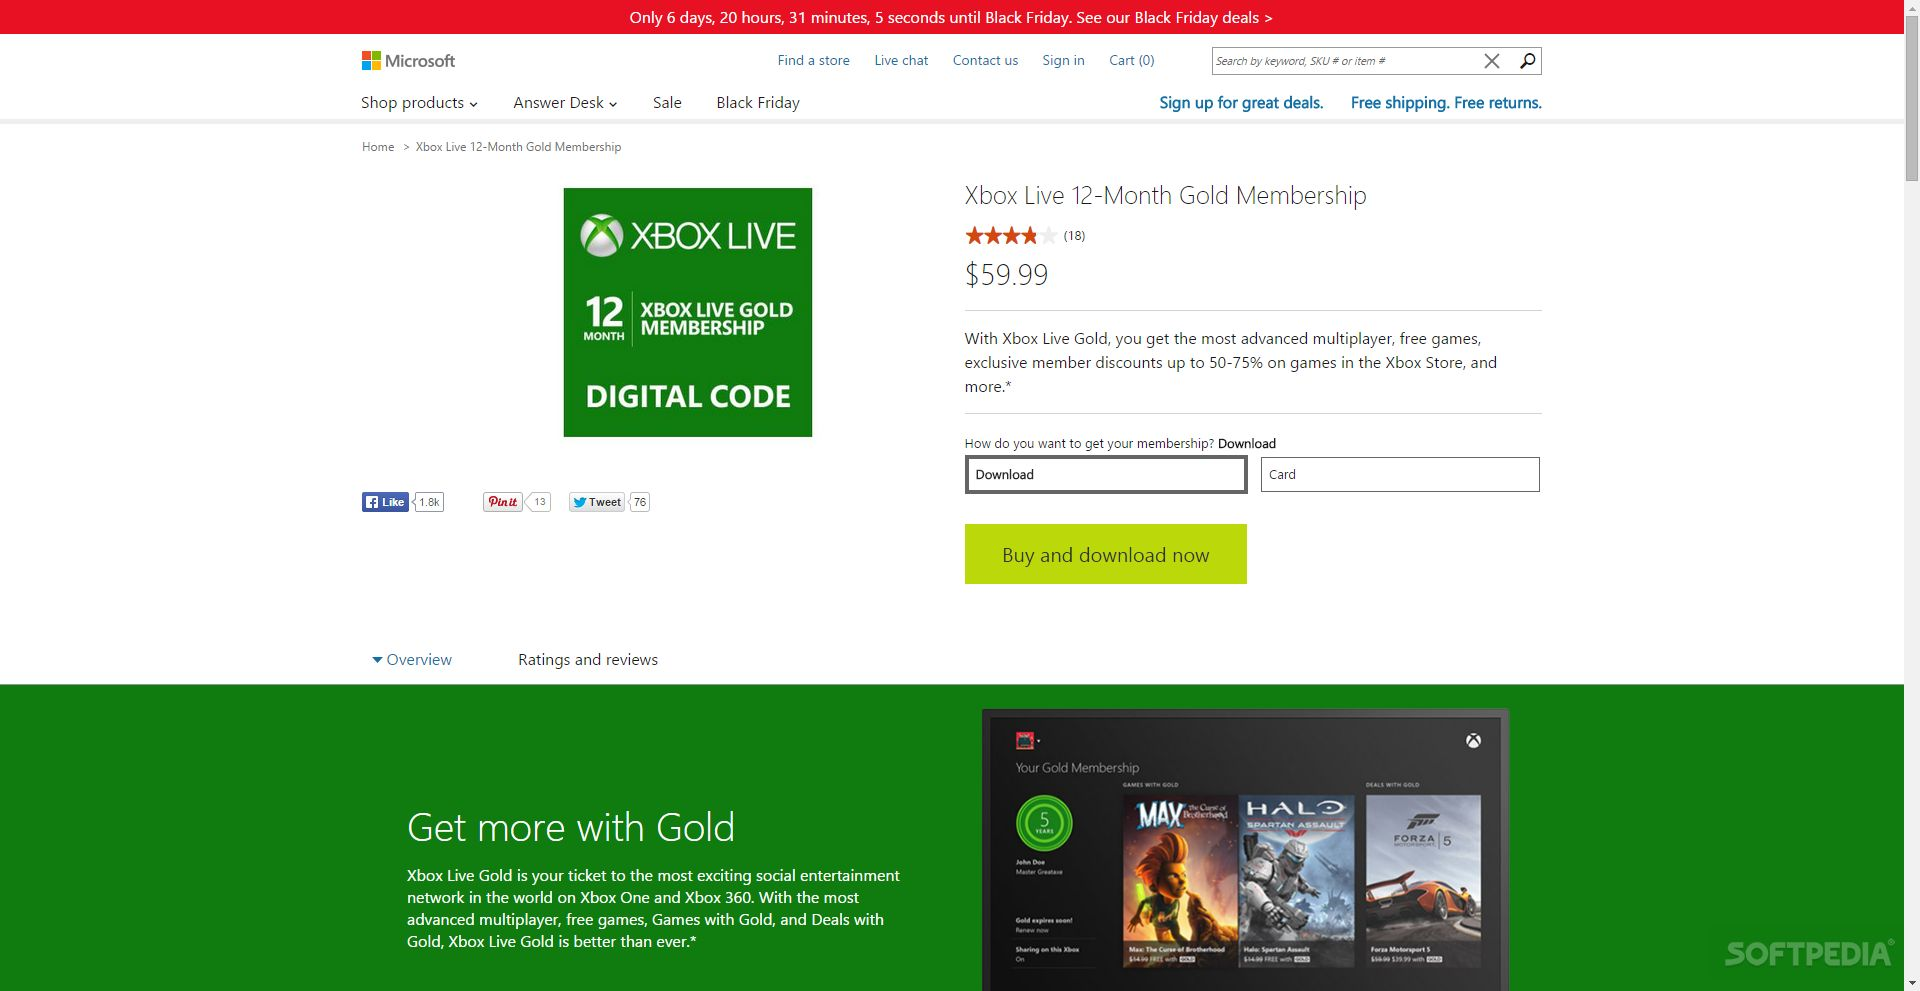 Xbox One Black Friday Deals Revealed, Feature Assassin's